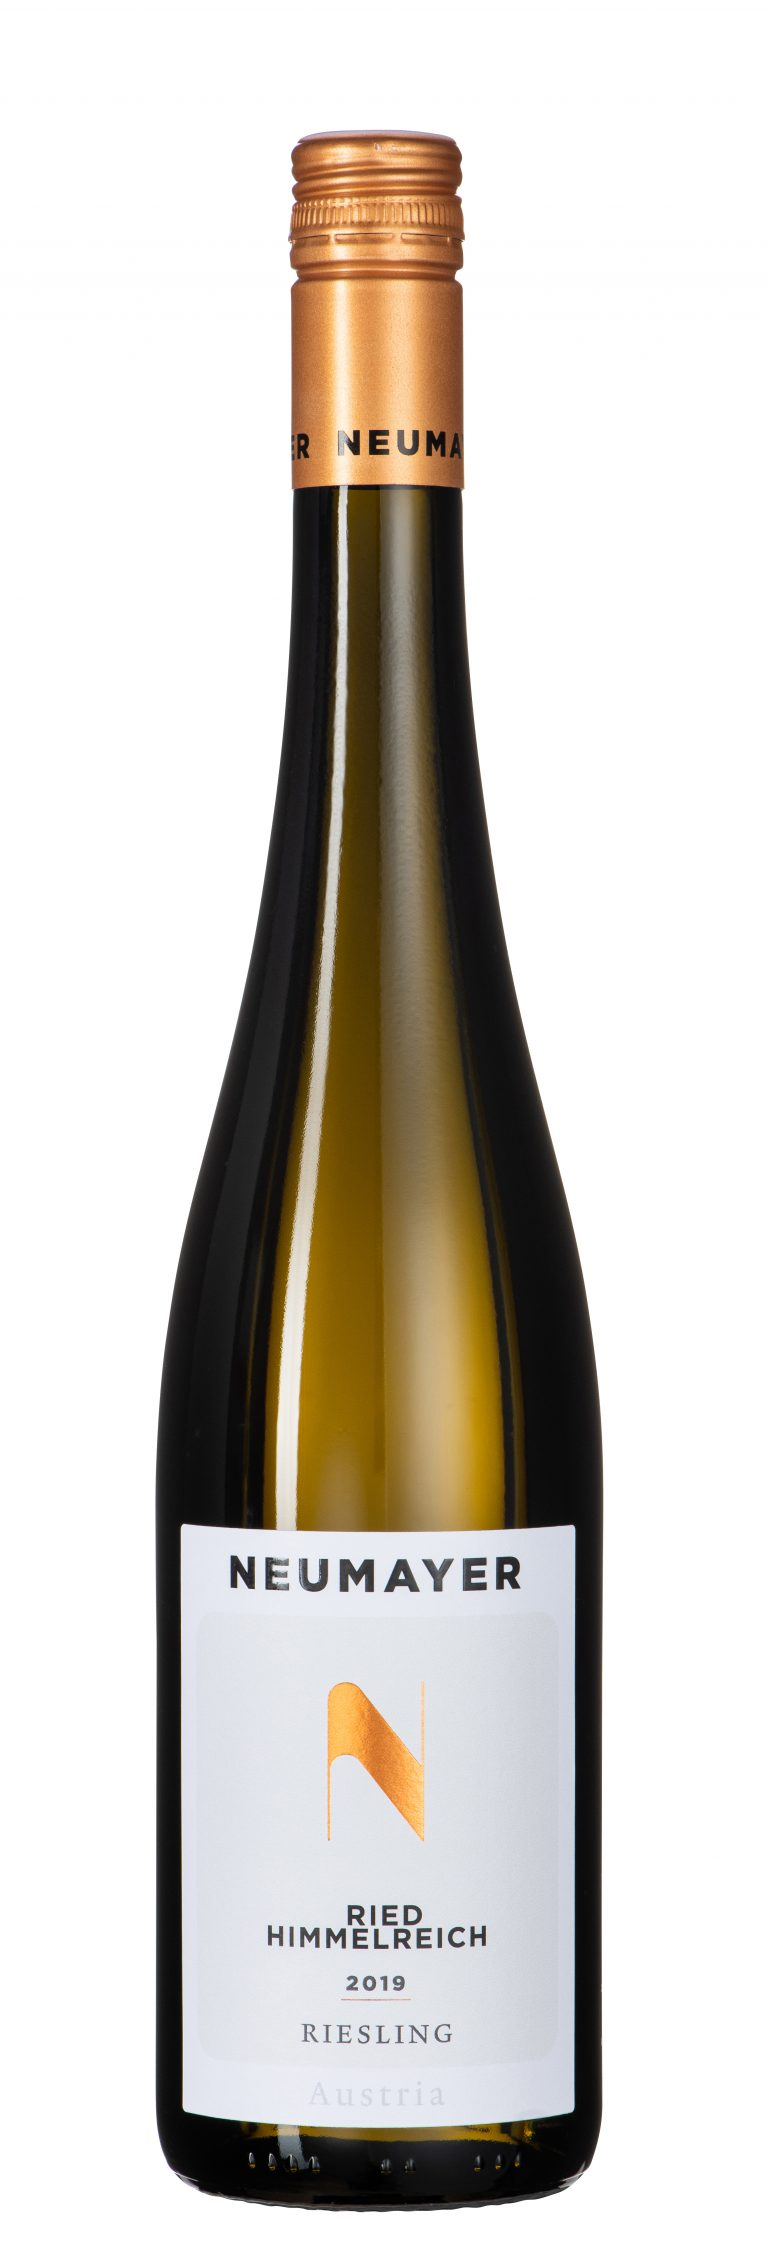 Riesling Himmelreich